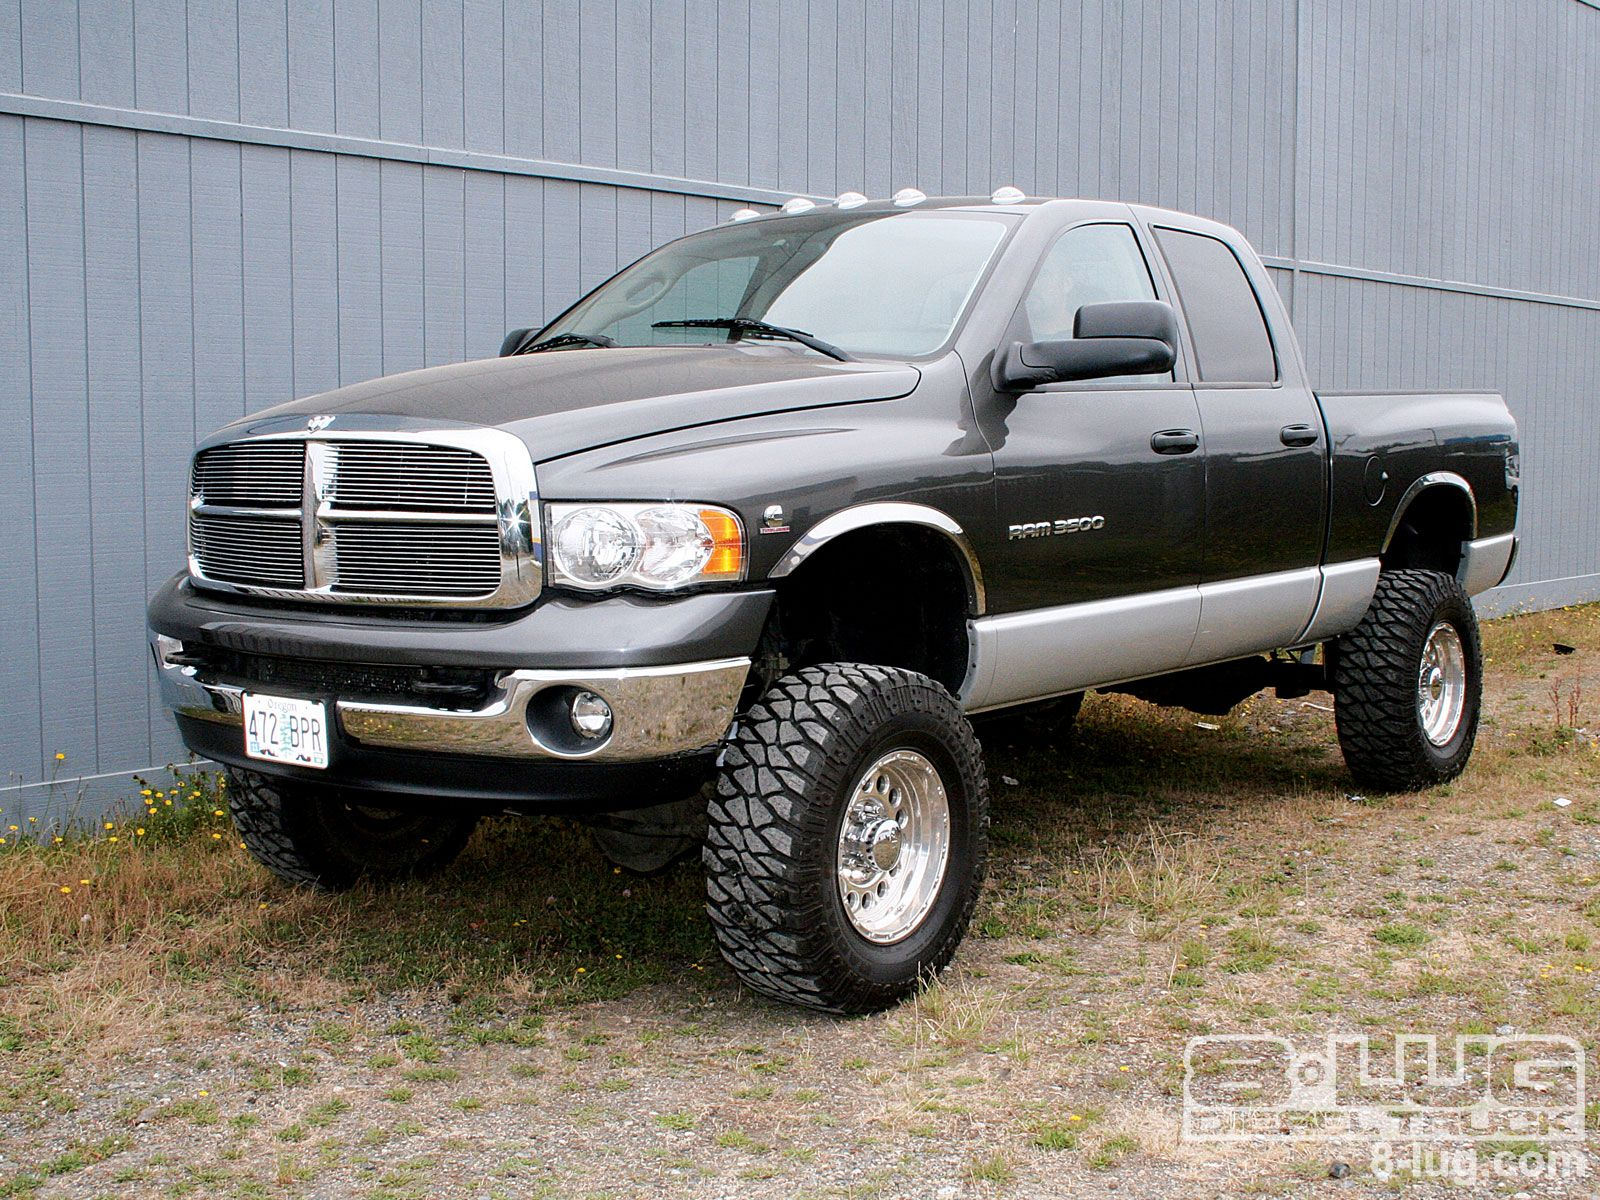 most reliable truck in canada site:pinterest.com - 1000+ images about rucks on Pinterest Semi trucks, Dodge ram ...